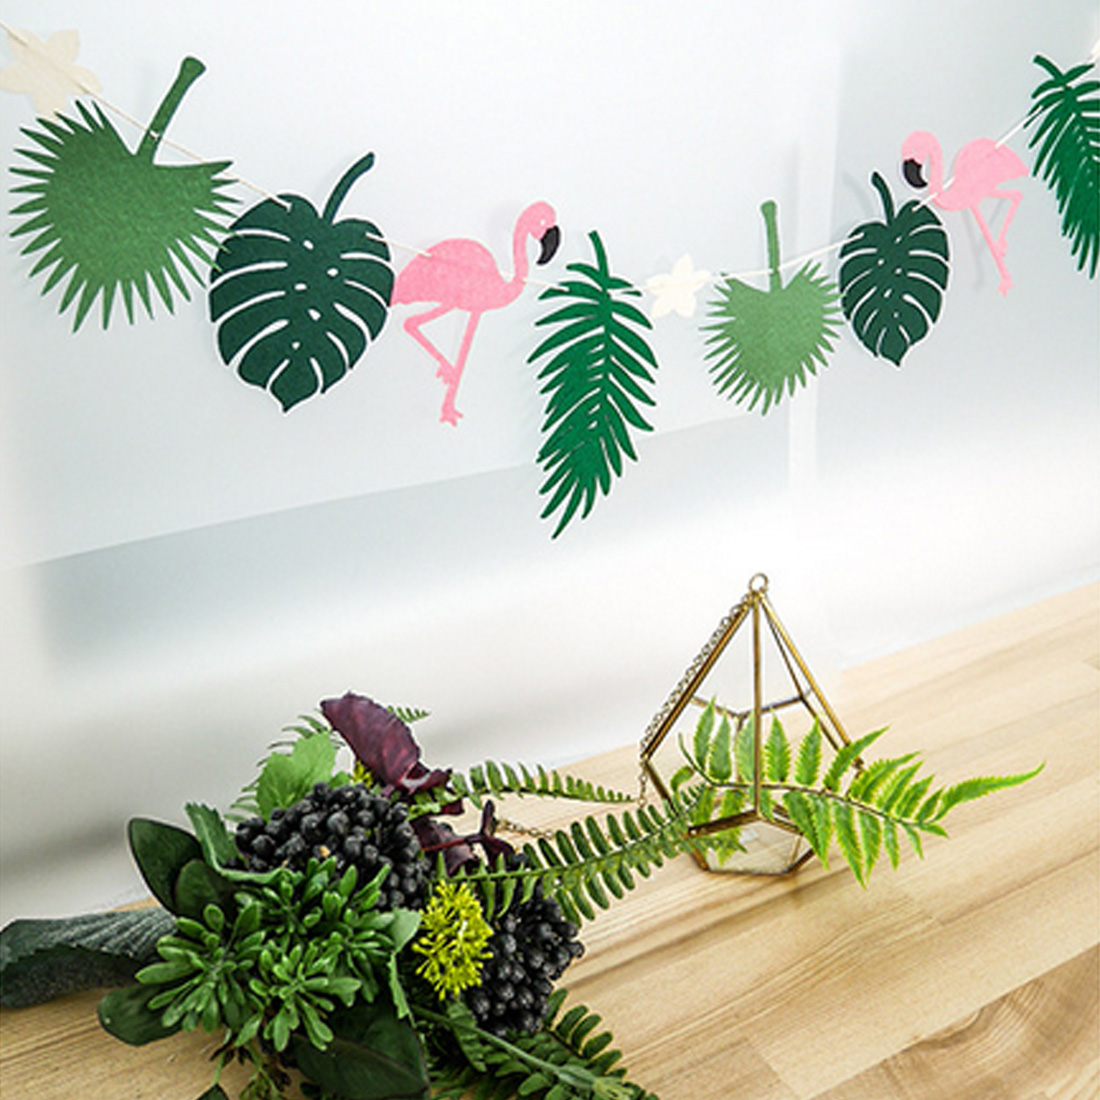 New arrival flamingo and pineapple banner bunting summer for How to make luau decorations at home